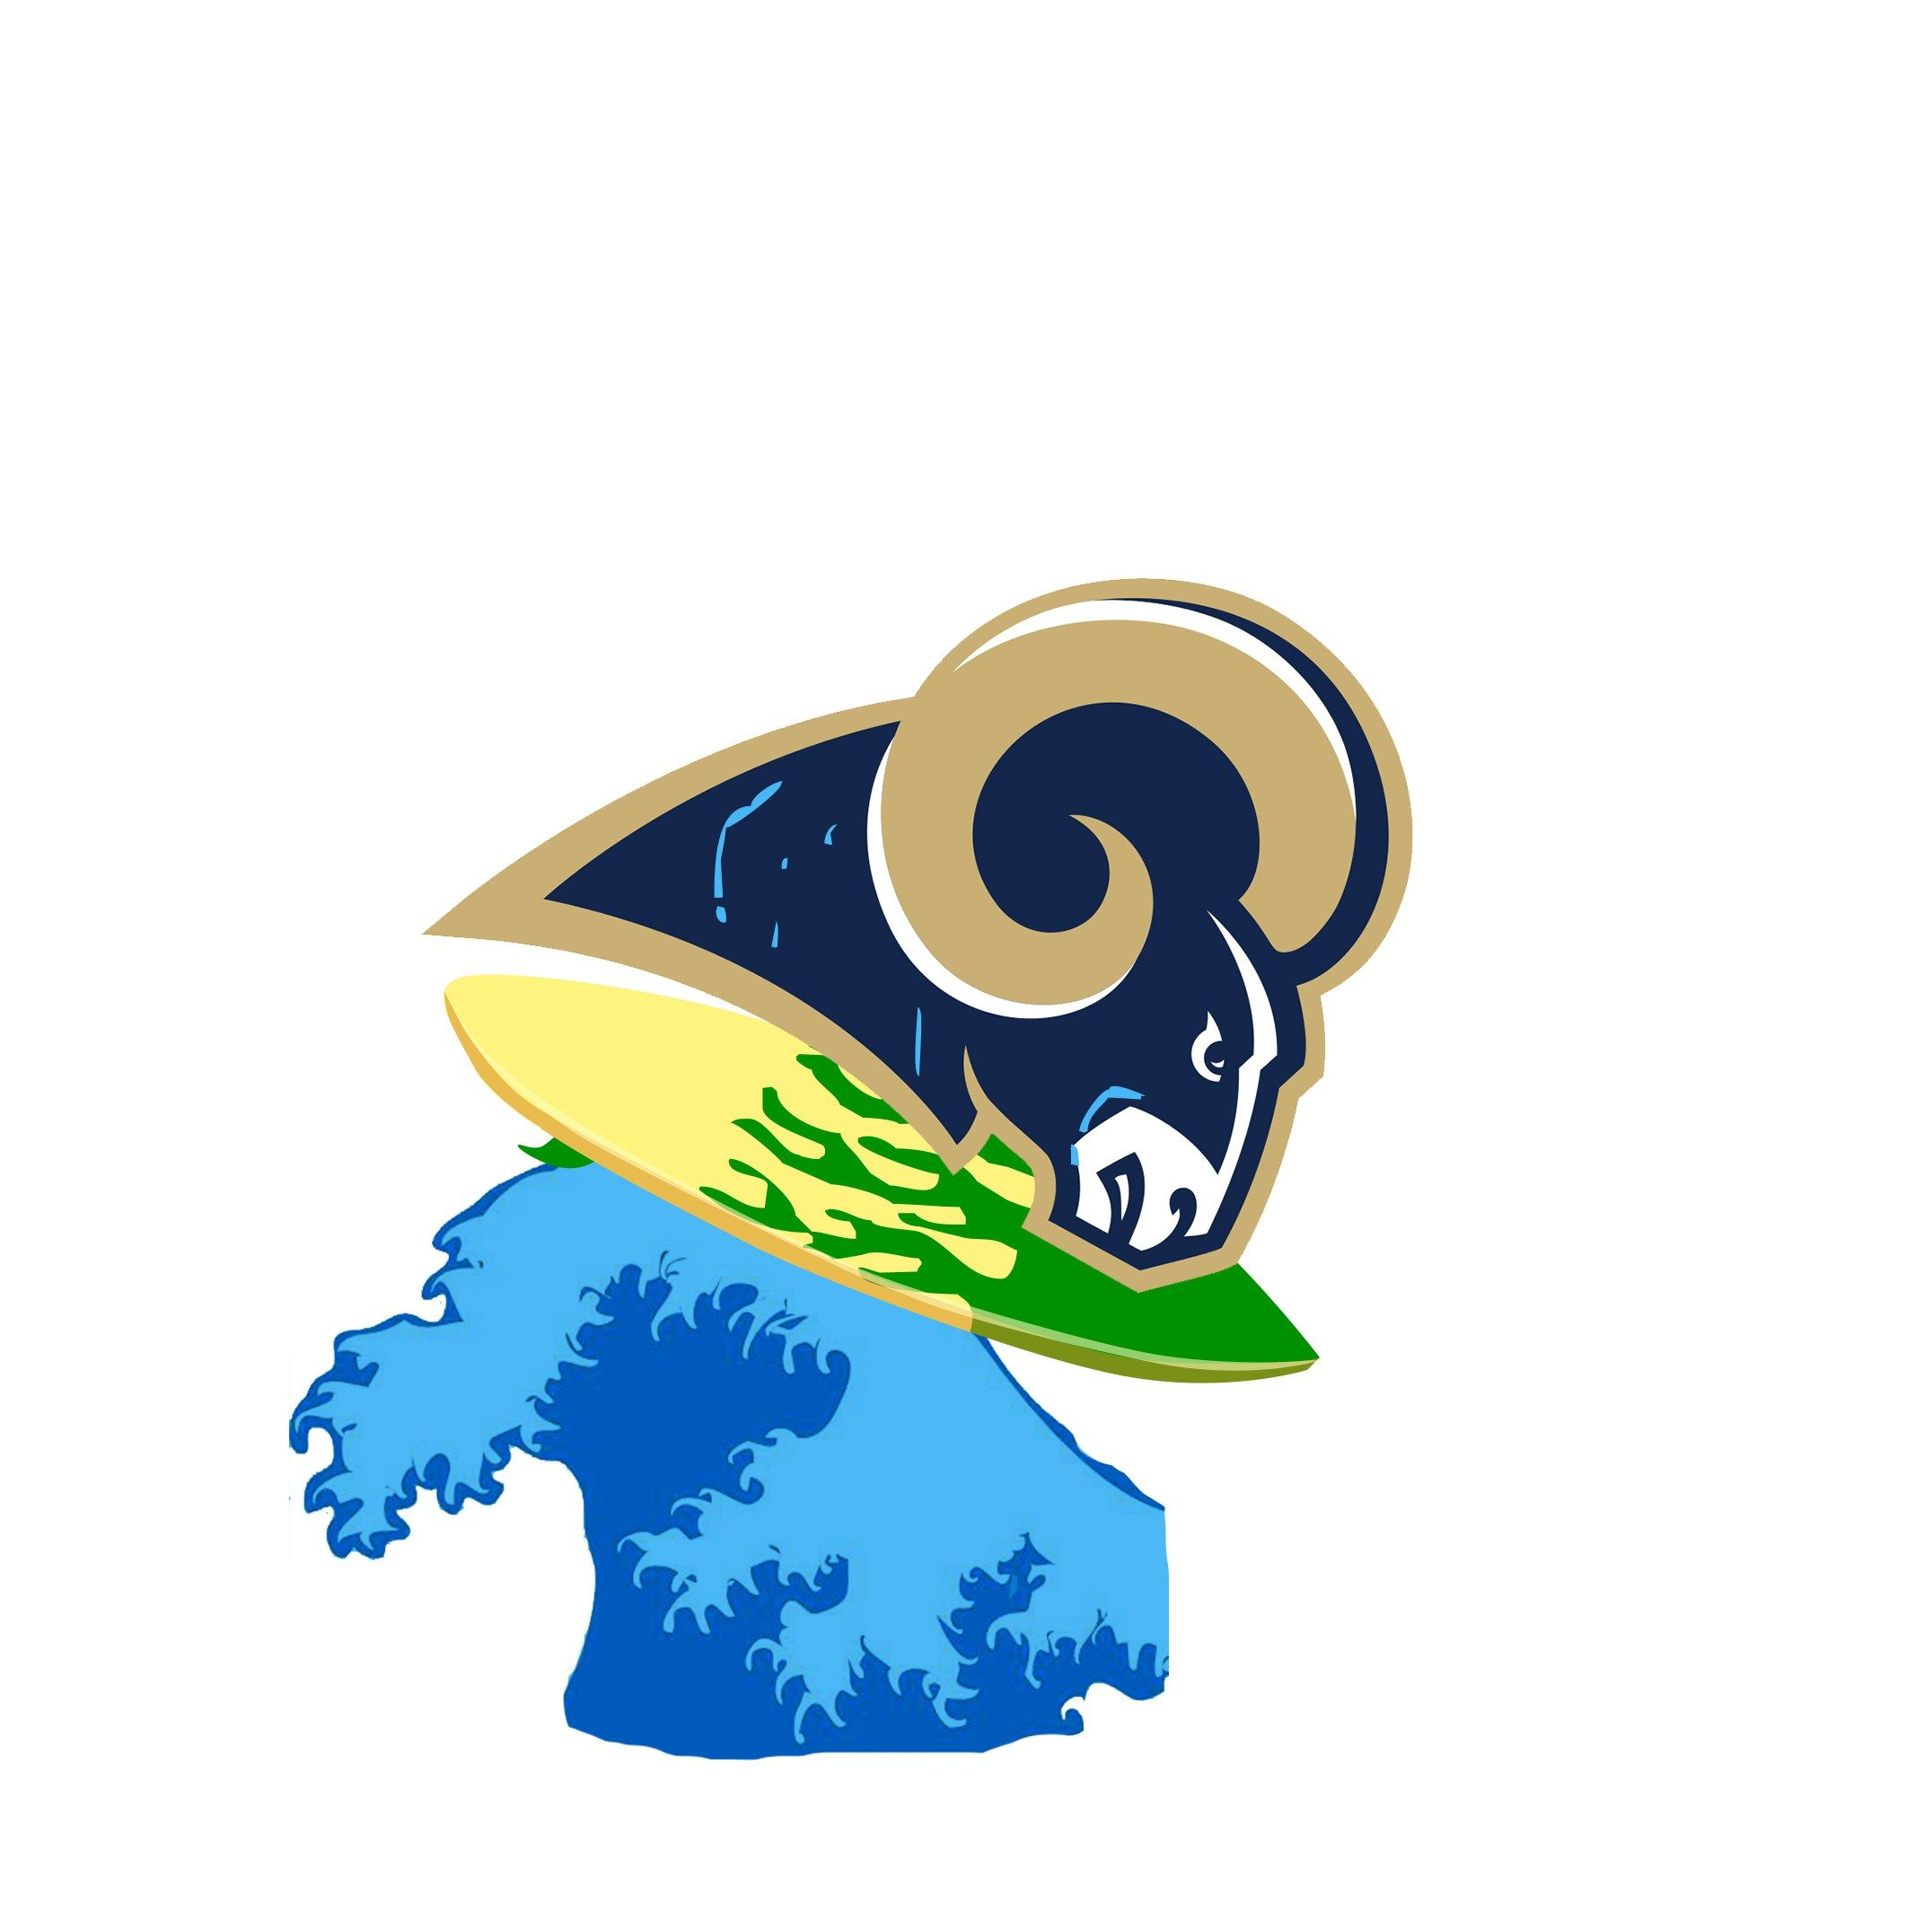 The SiriusXM Sports guide to a new Los Angeles Rams logo